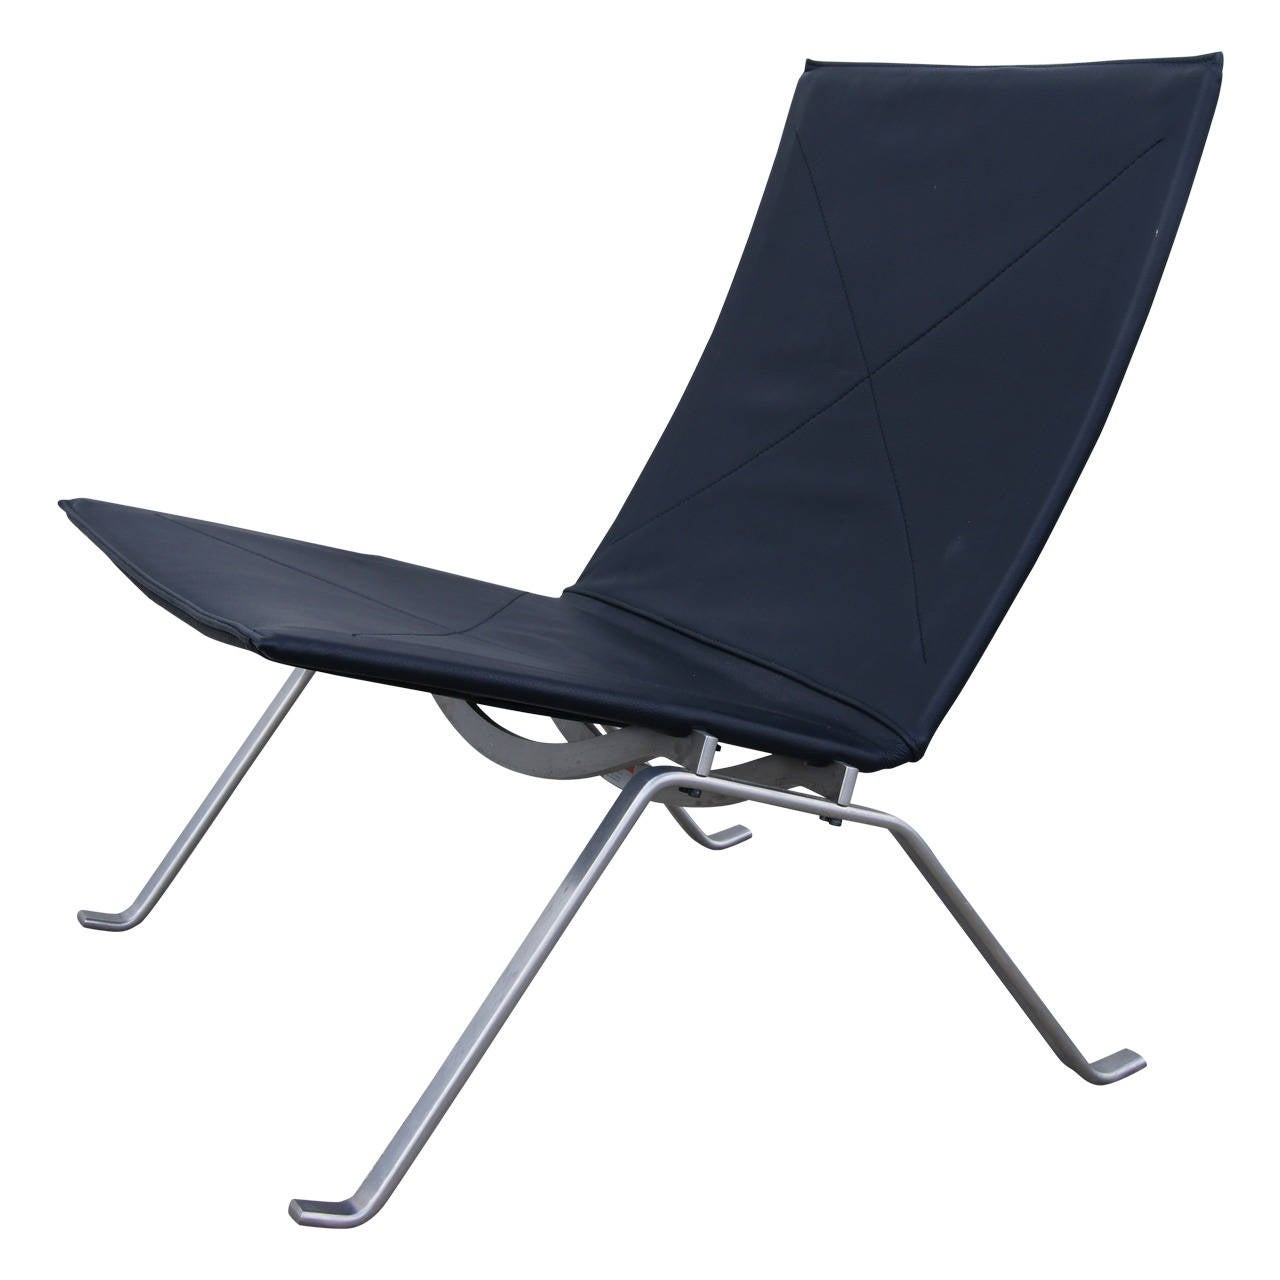 PK22 Lounge Chair By Poul Kjaerholm For Fritz Hansen At 1stdibs